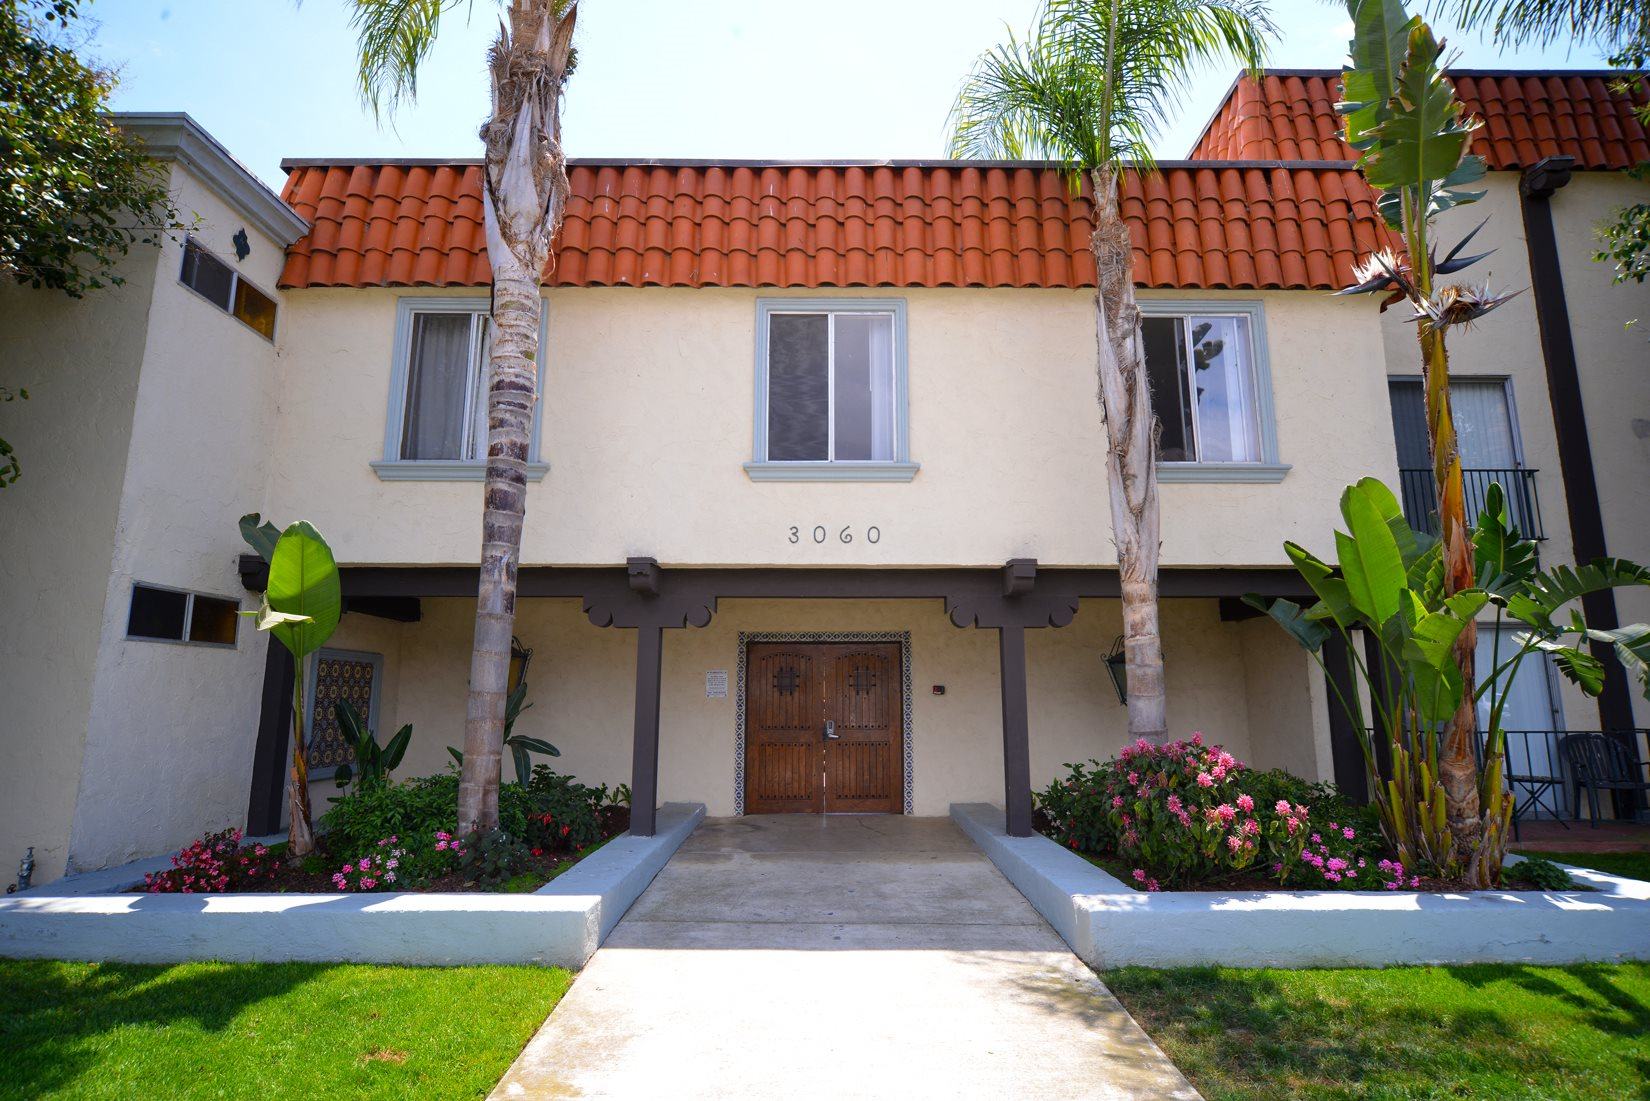 Ocean View Townhomes exterior building front